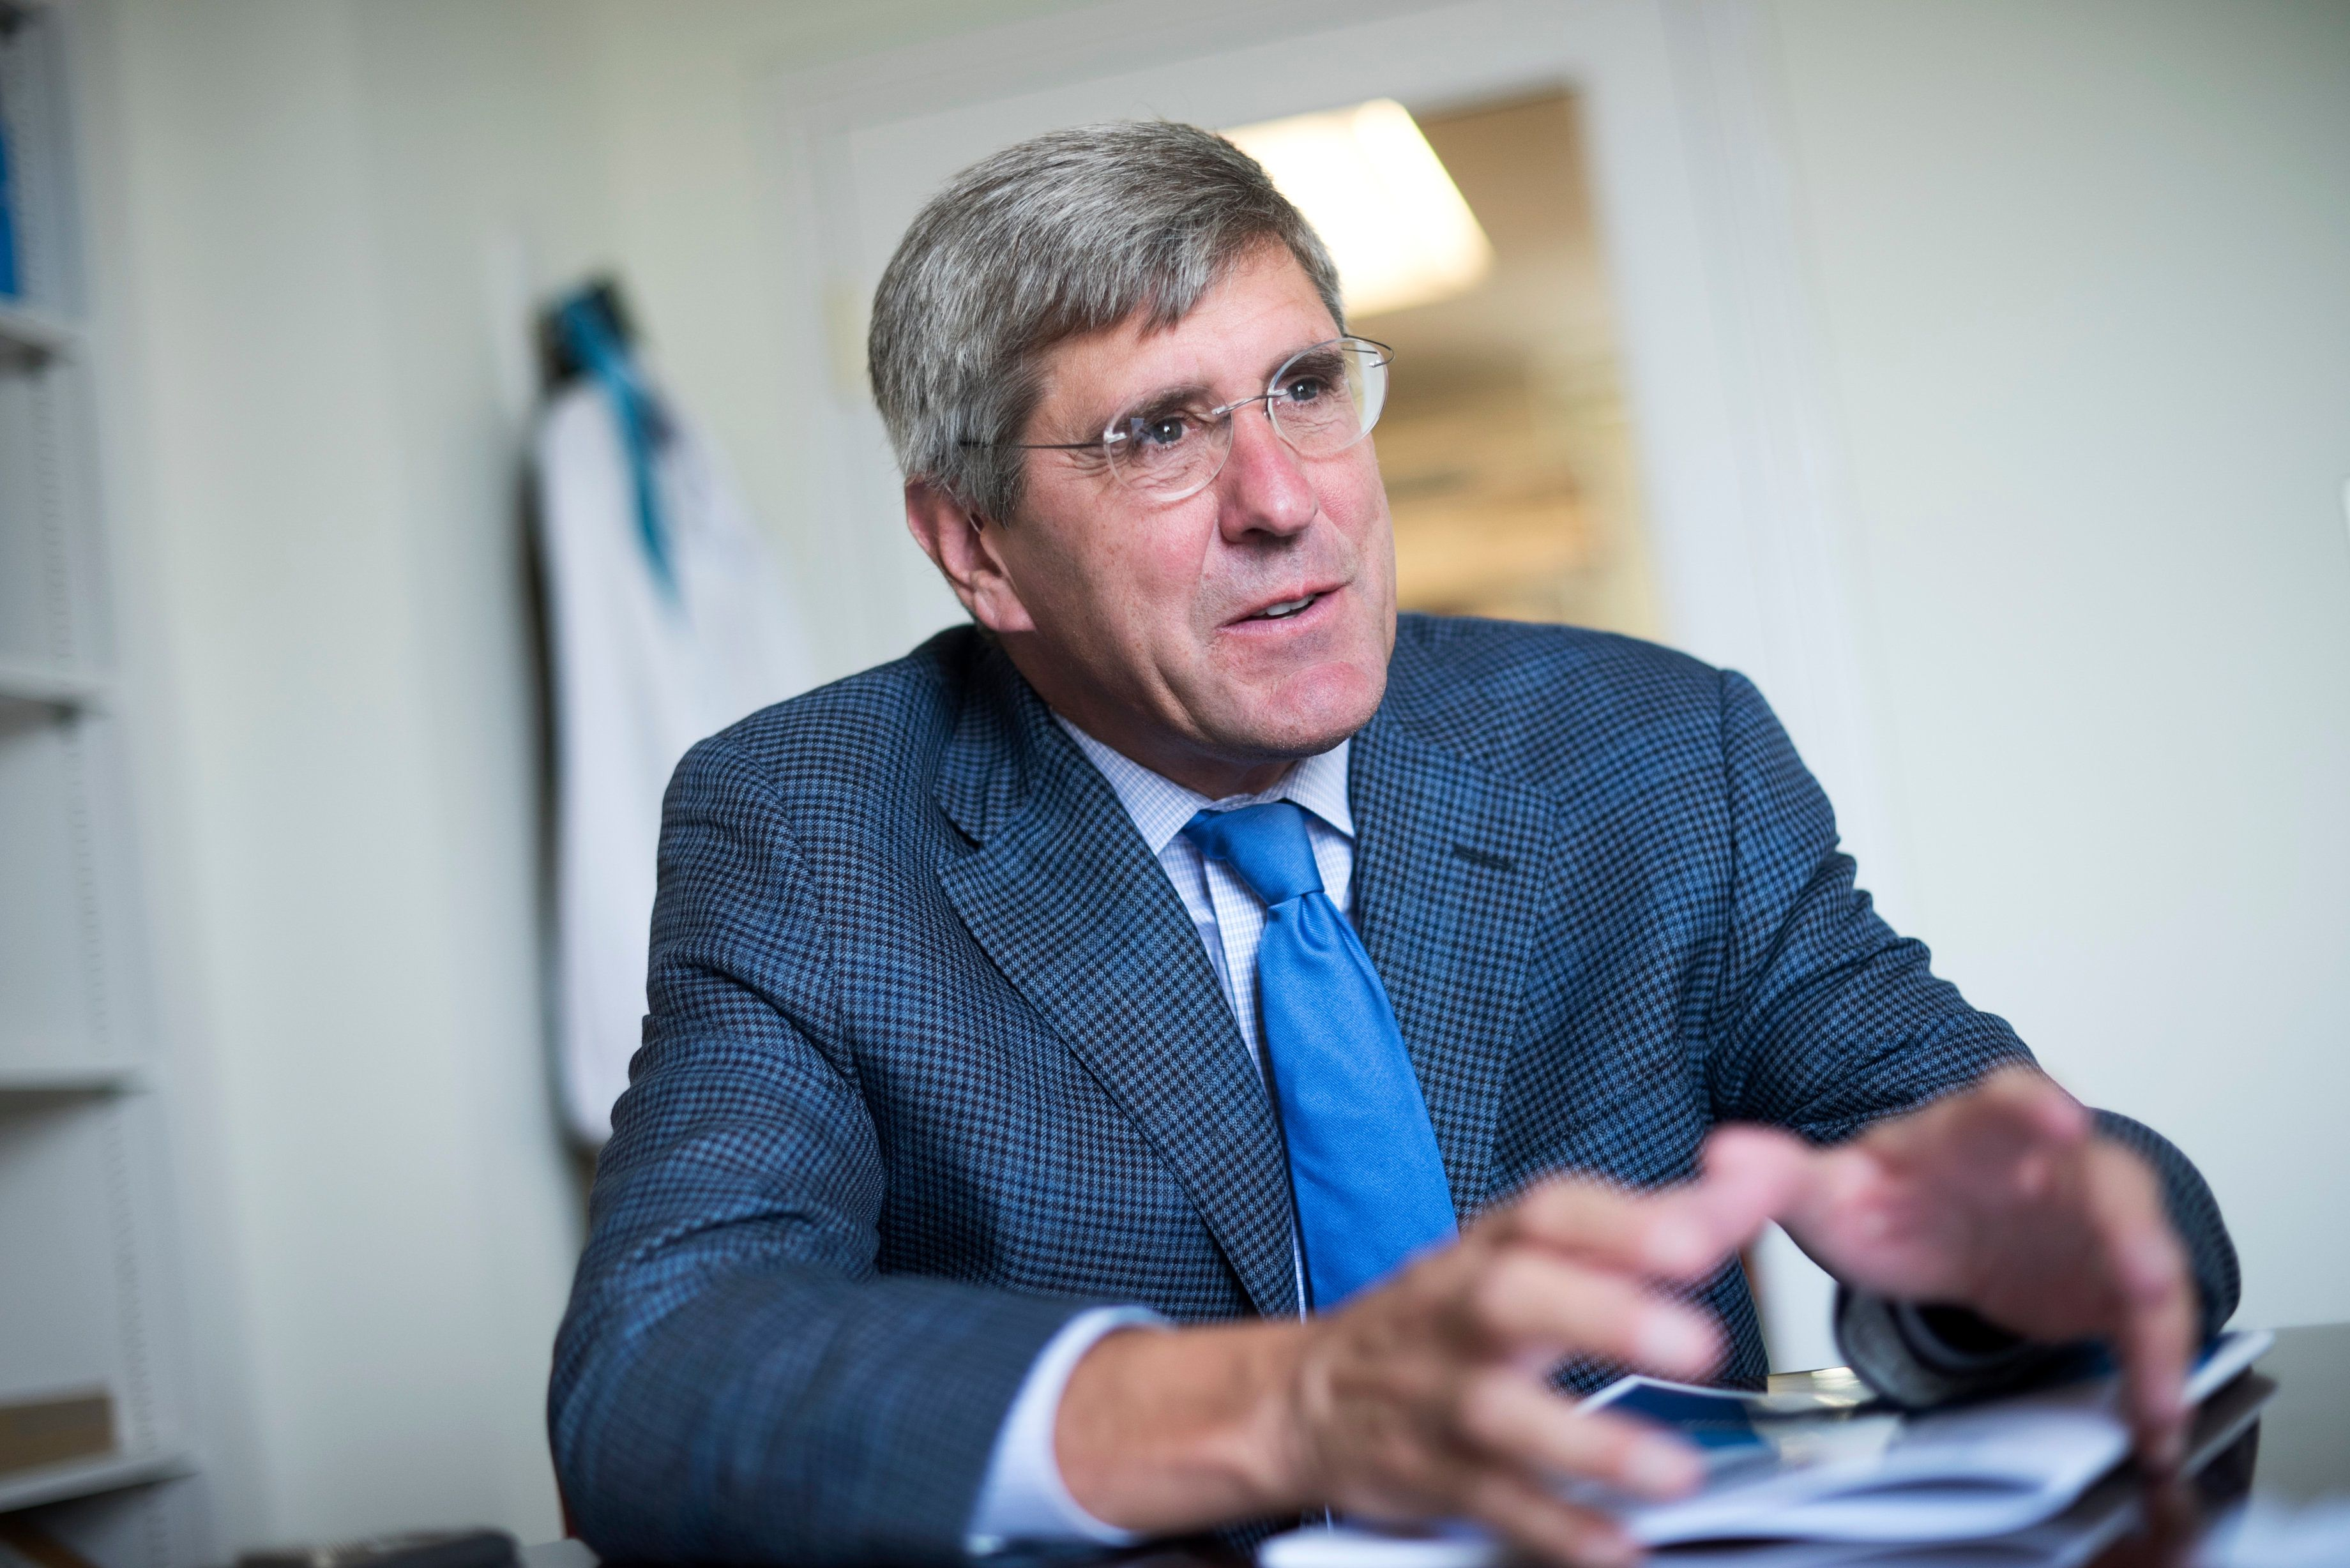 UNITED STATES - AUGUST 31: Stephen Moore of The Heritage Foundation is interviewed by CQ in his Washington office, August 31, 2016. (Photo By Tom Williams/CQ Roll Call)